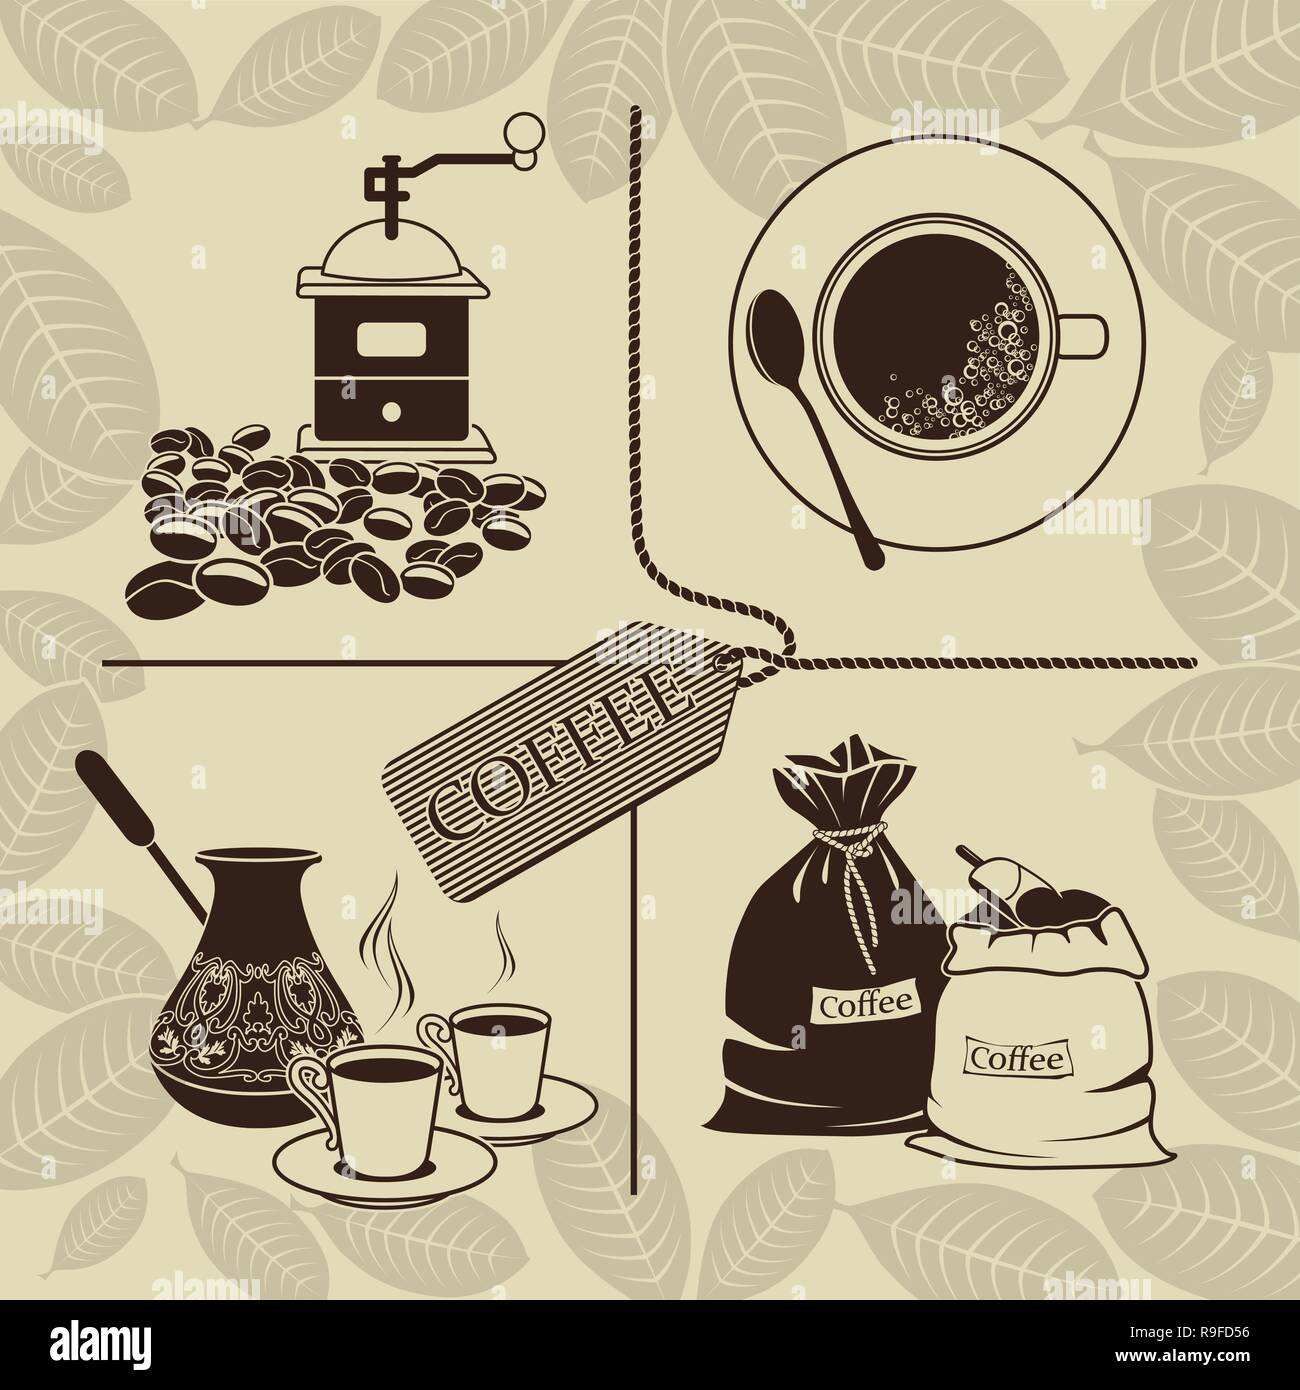 Set of coffee beans, cezve, grinder, cup of coffee and sacks - Stock Vector